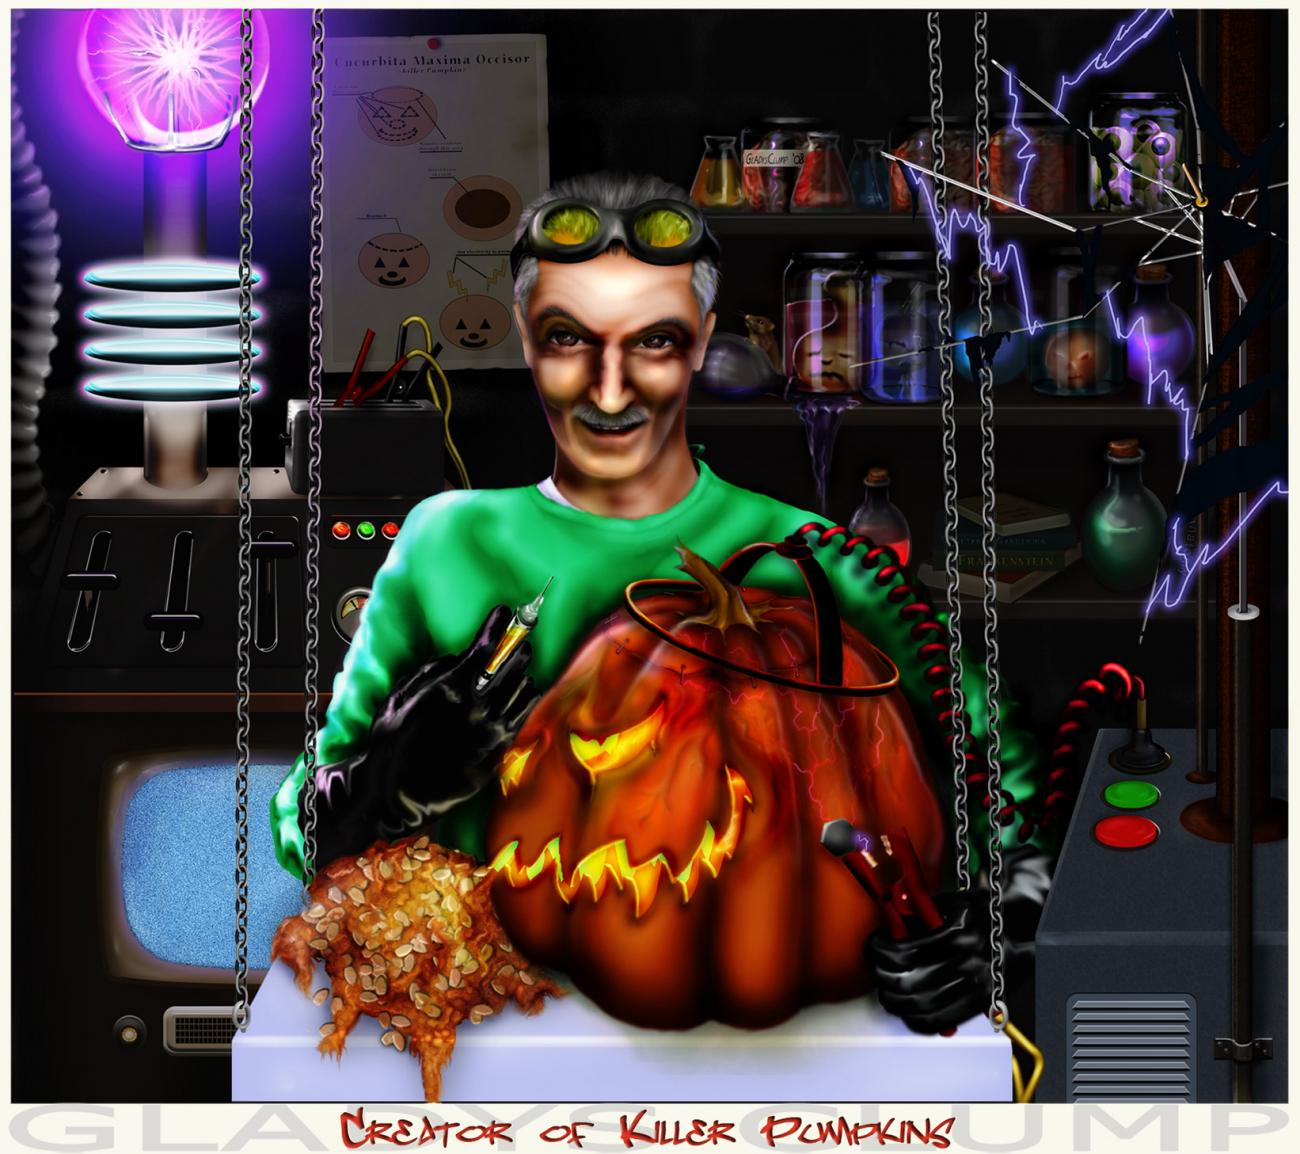 Creator of Killer Pumpkins